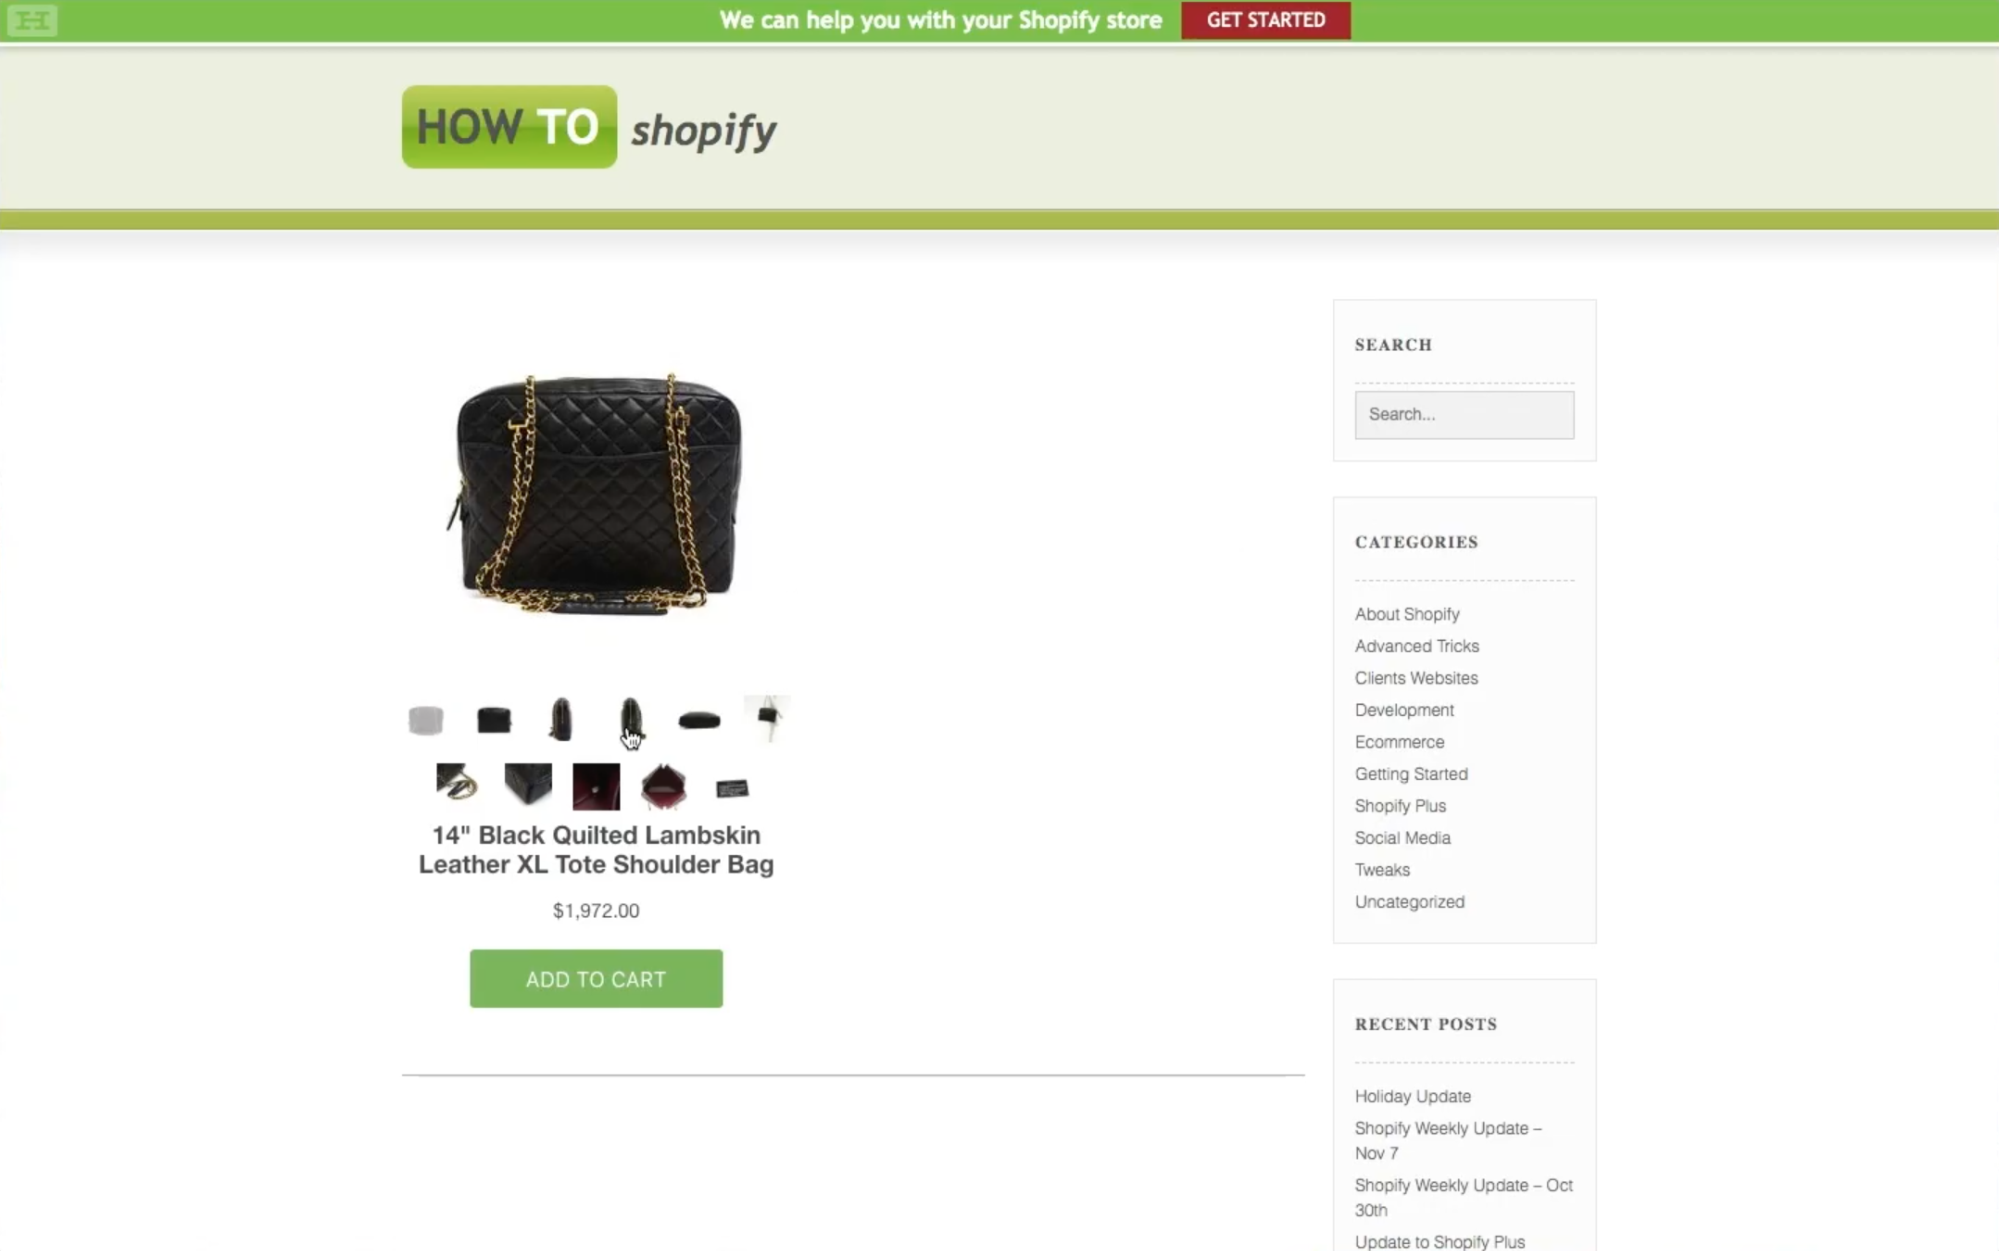 Shopify Buy Button appears to be installed correctly